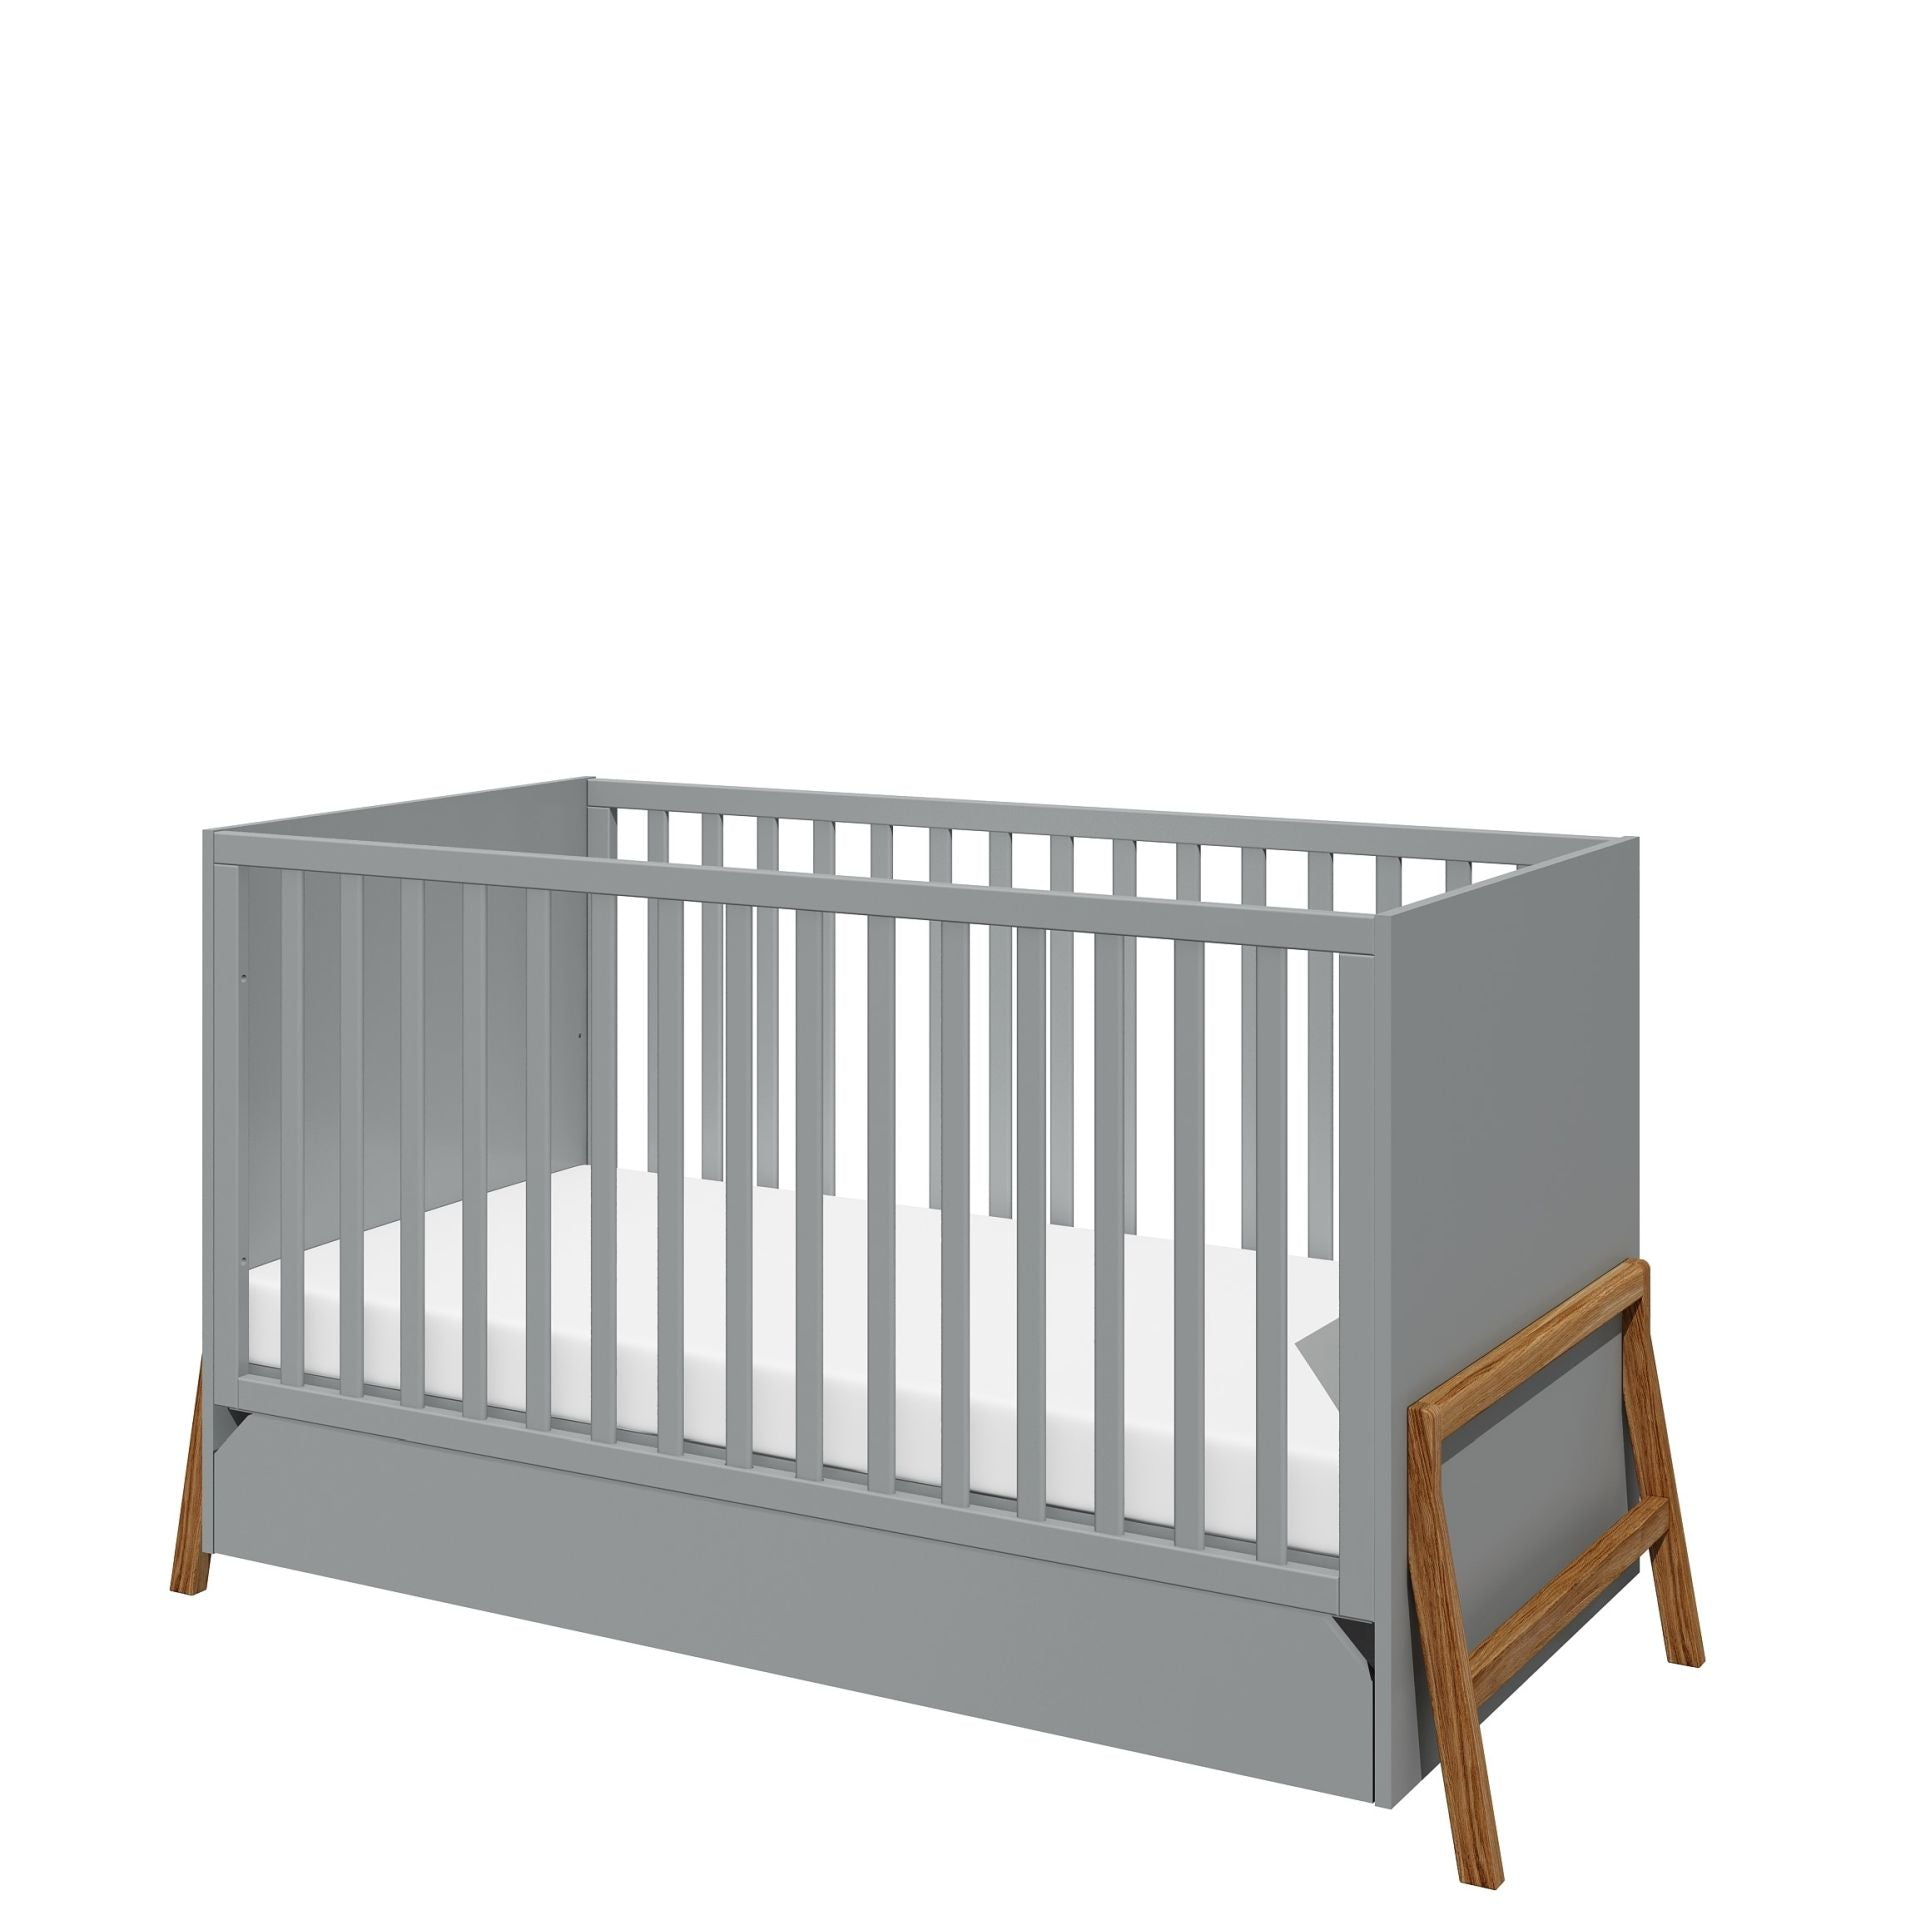 Lotta - Cot Bed 70x140cm with drawer